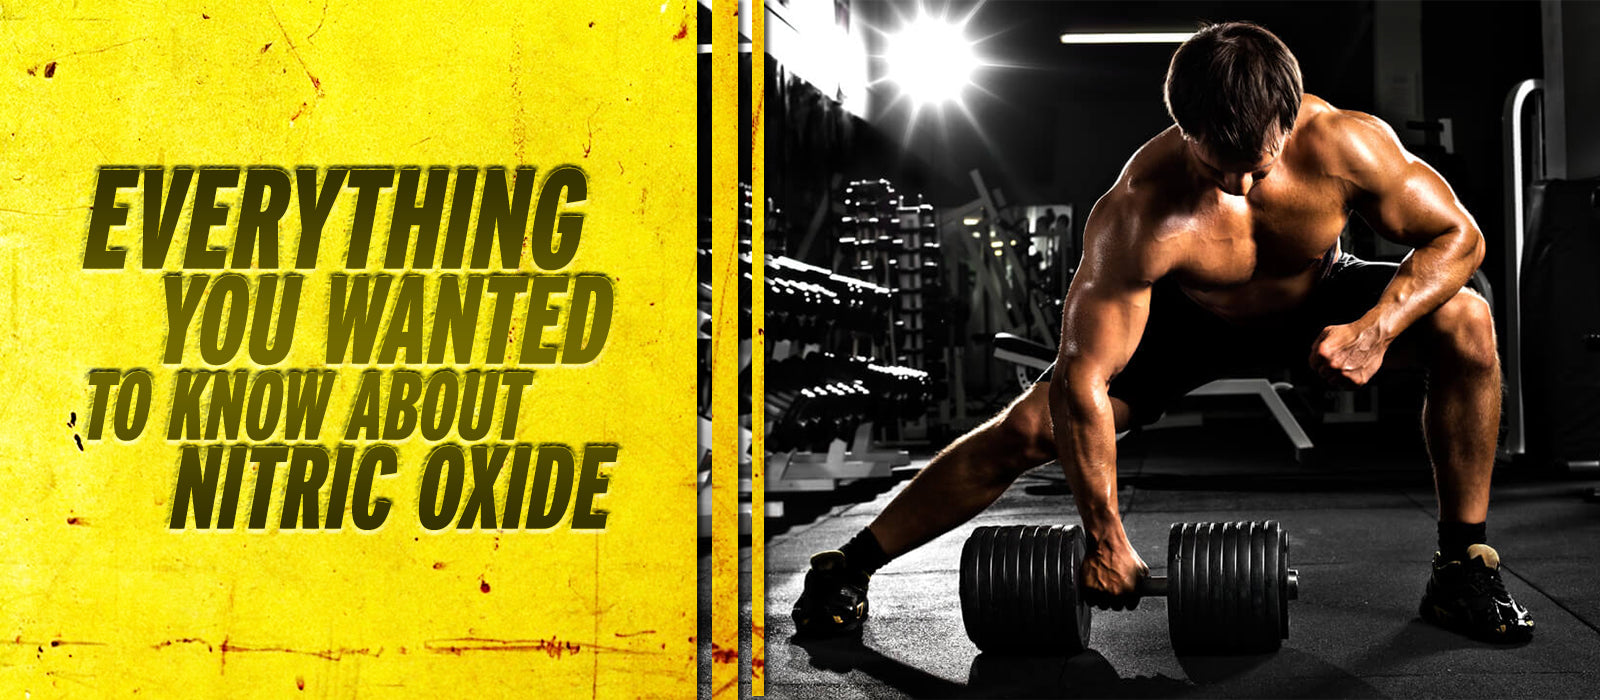 Everything You Wanted To Know About Nitric Oxide